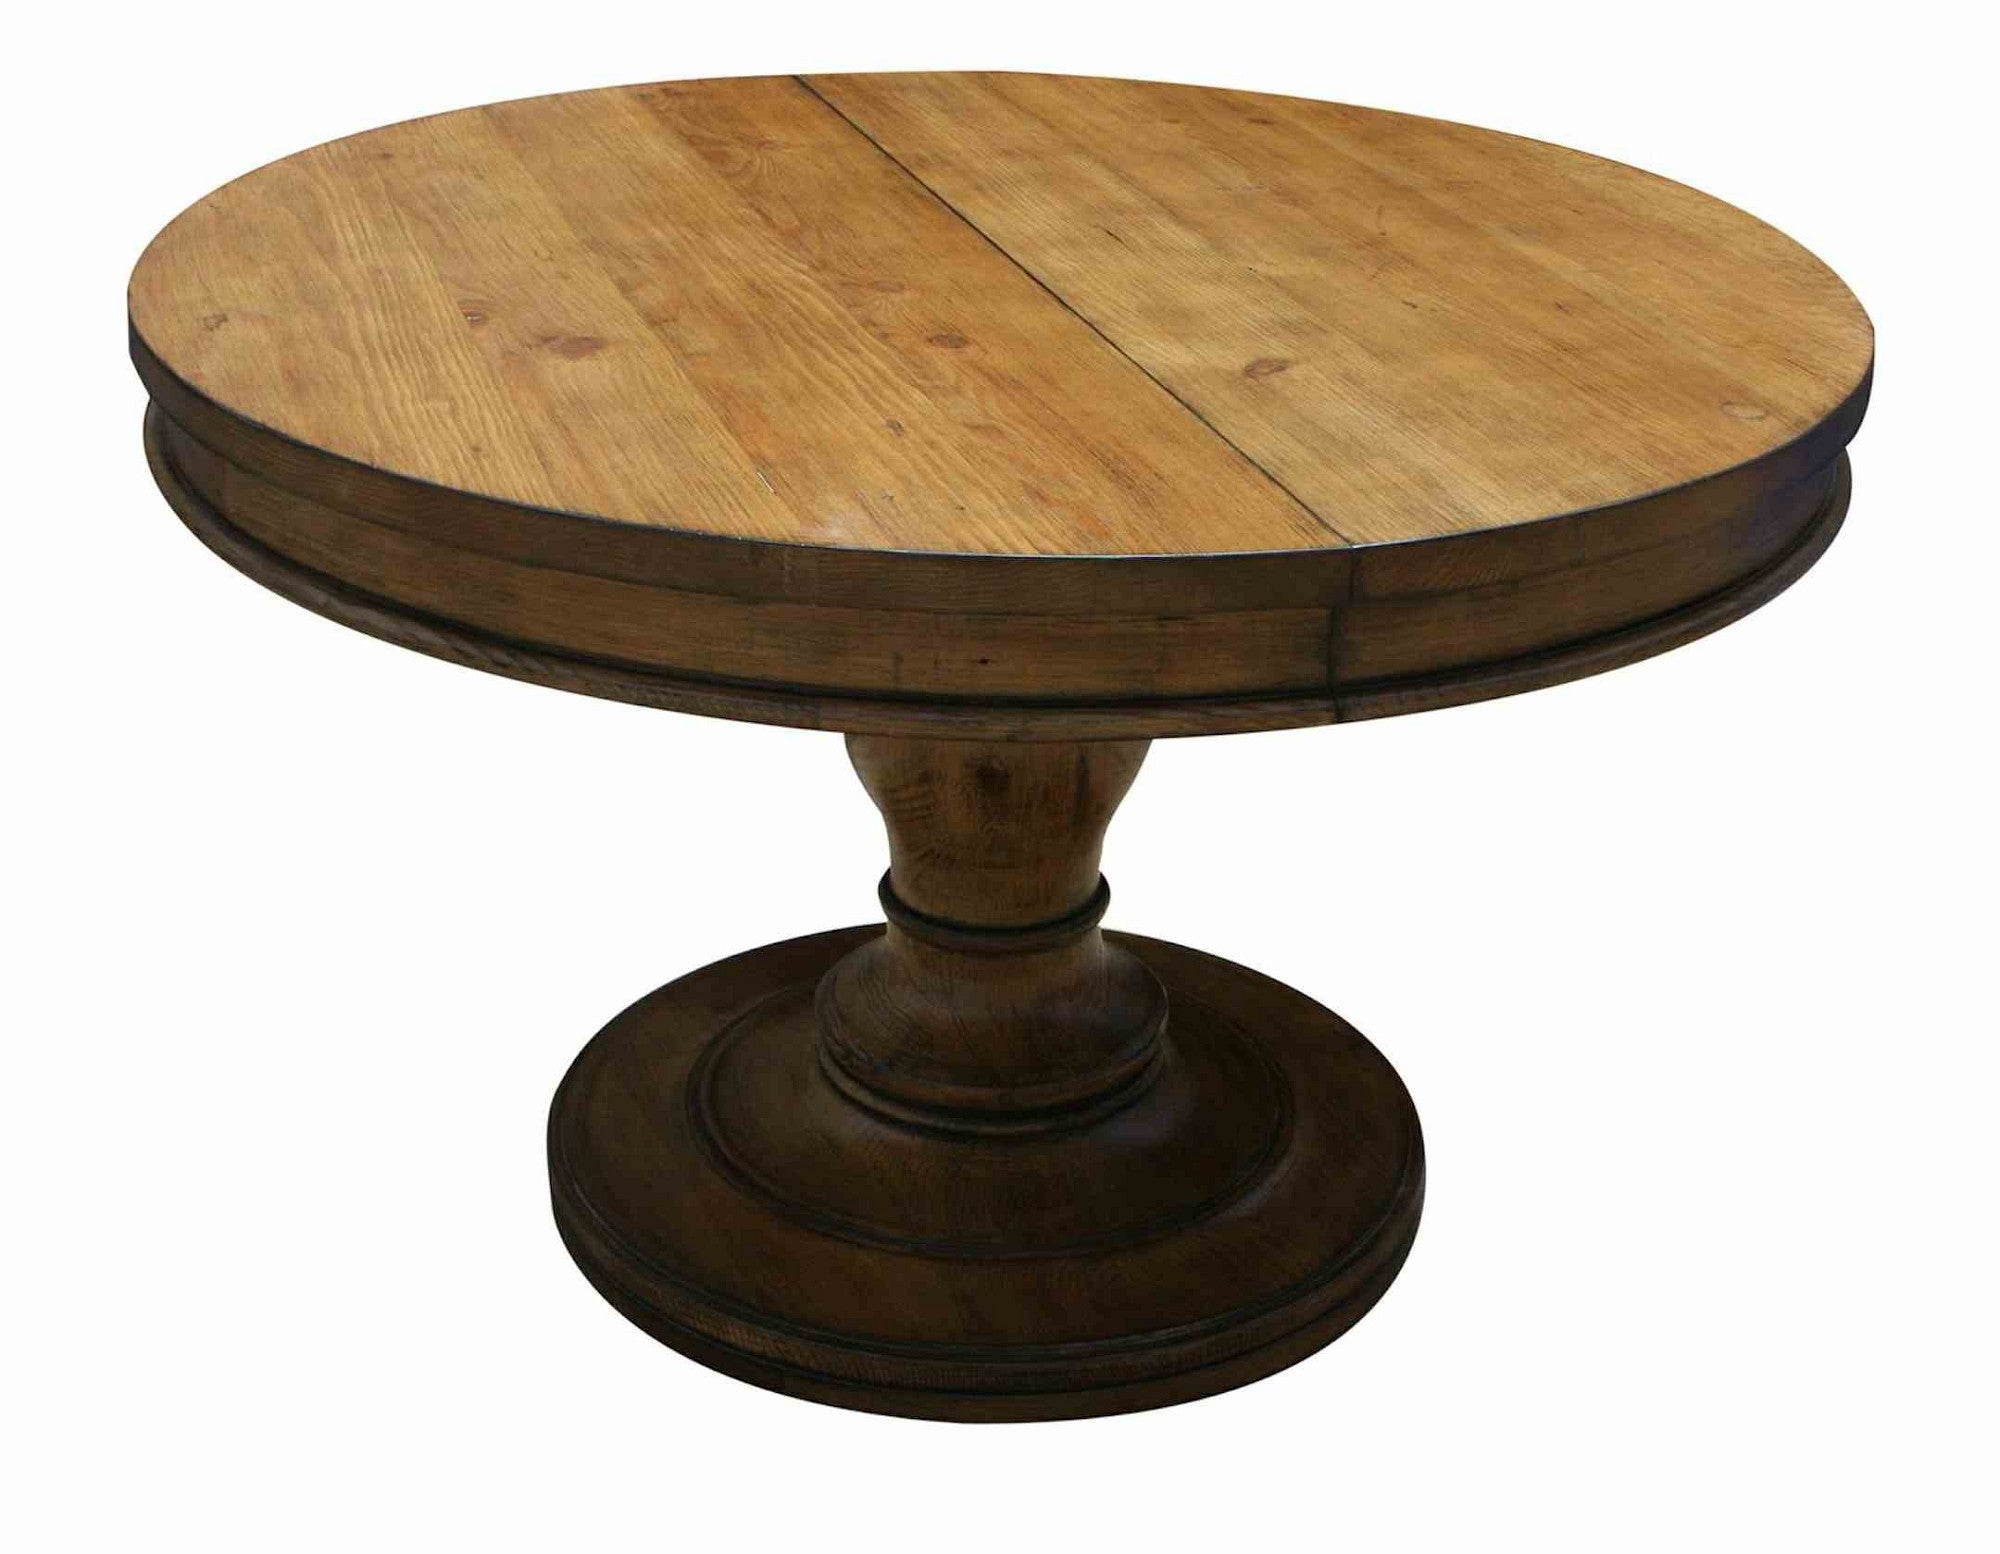 Picture of: Westport Round Reclaimed Wood Extension Pedestal Table Mortise Tenon